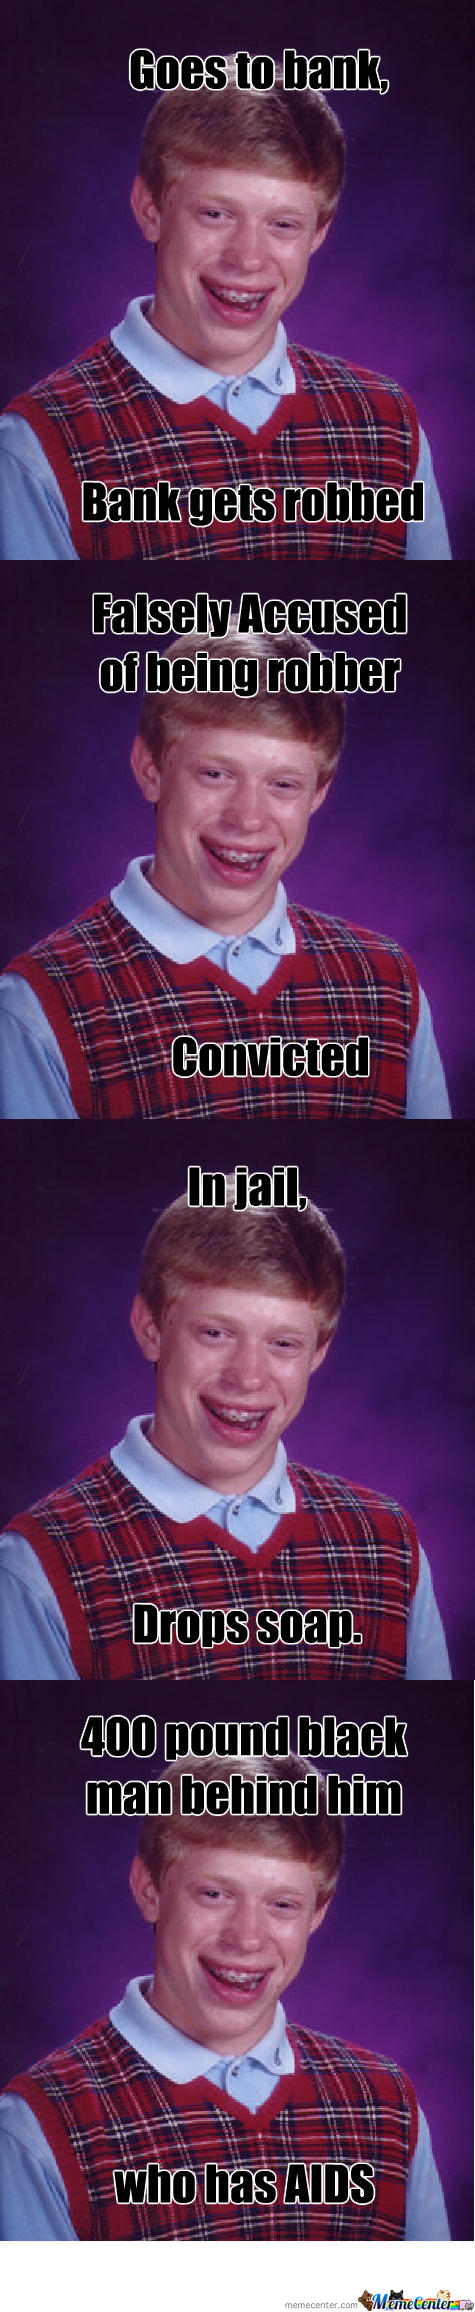 Bad Luck Brian Goes To Jail